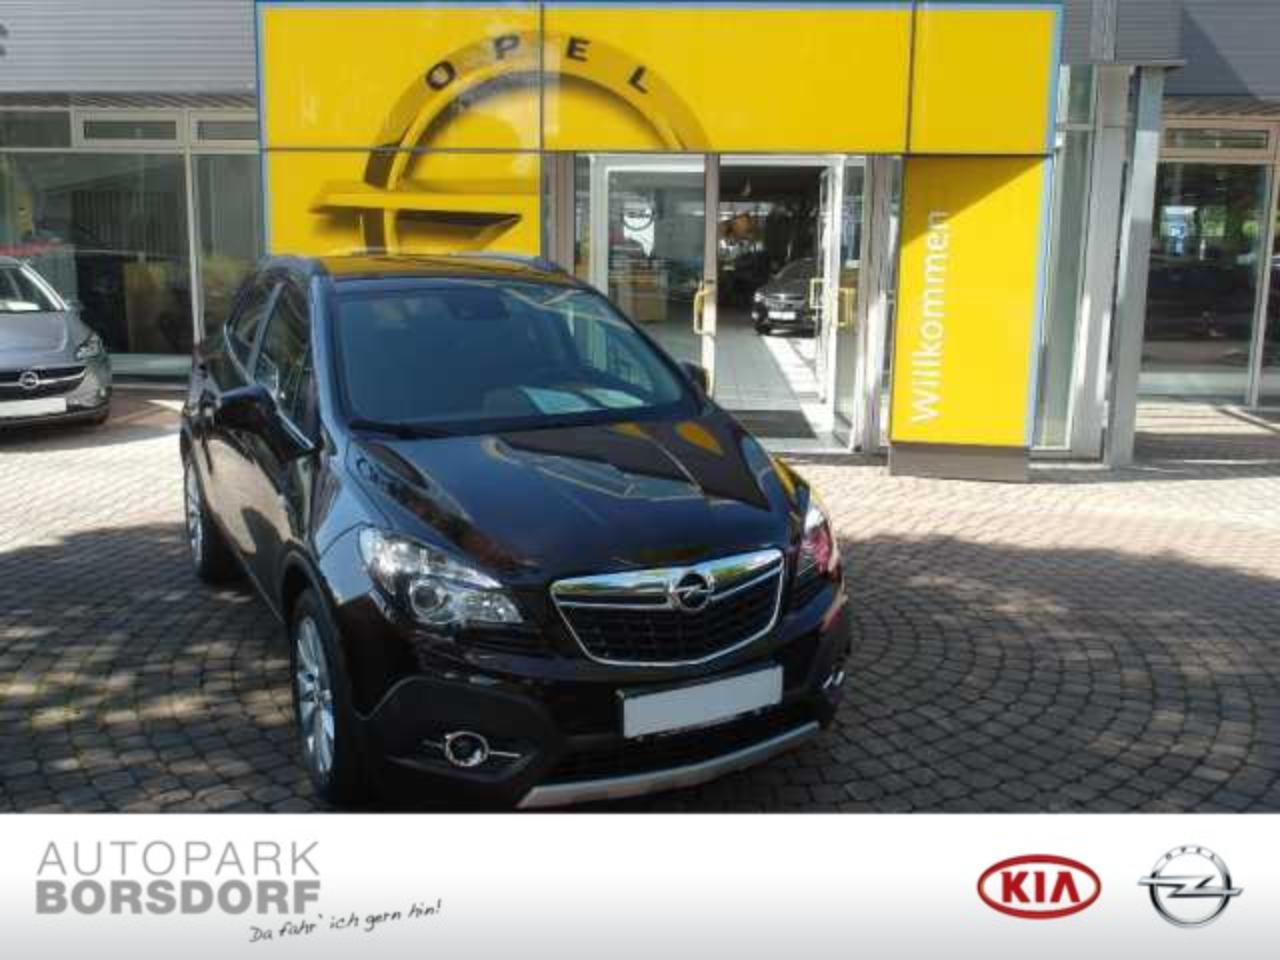 Opel Mokka Mokka 1.6 CDTI ecoFLEX Start/Stop Innovation *Opel